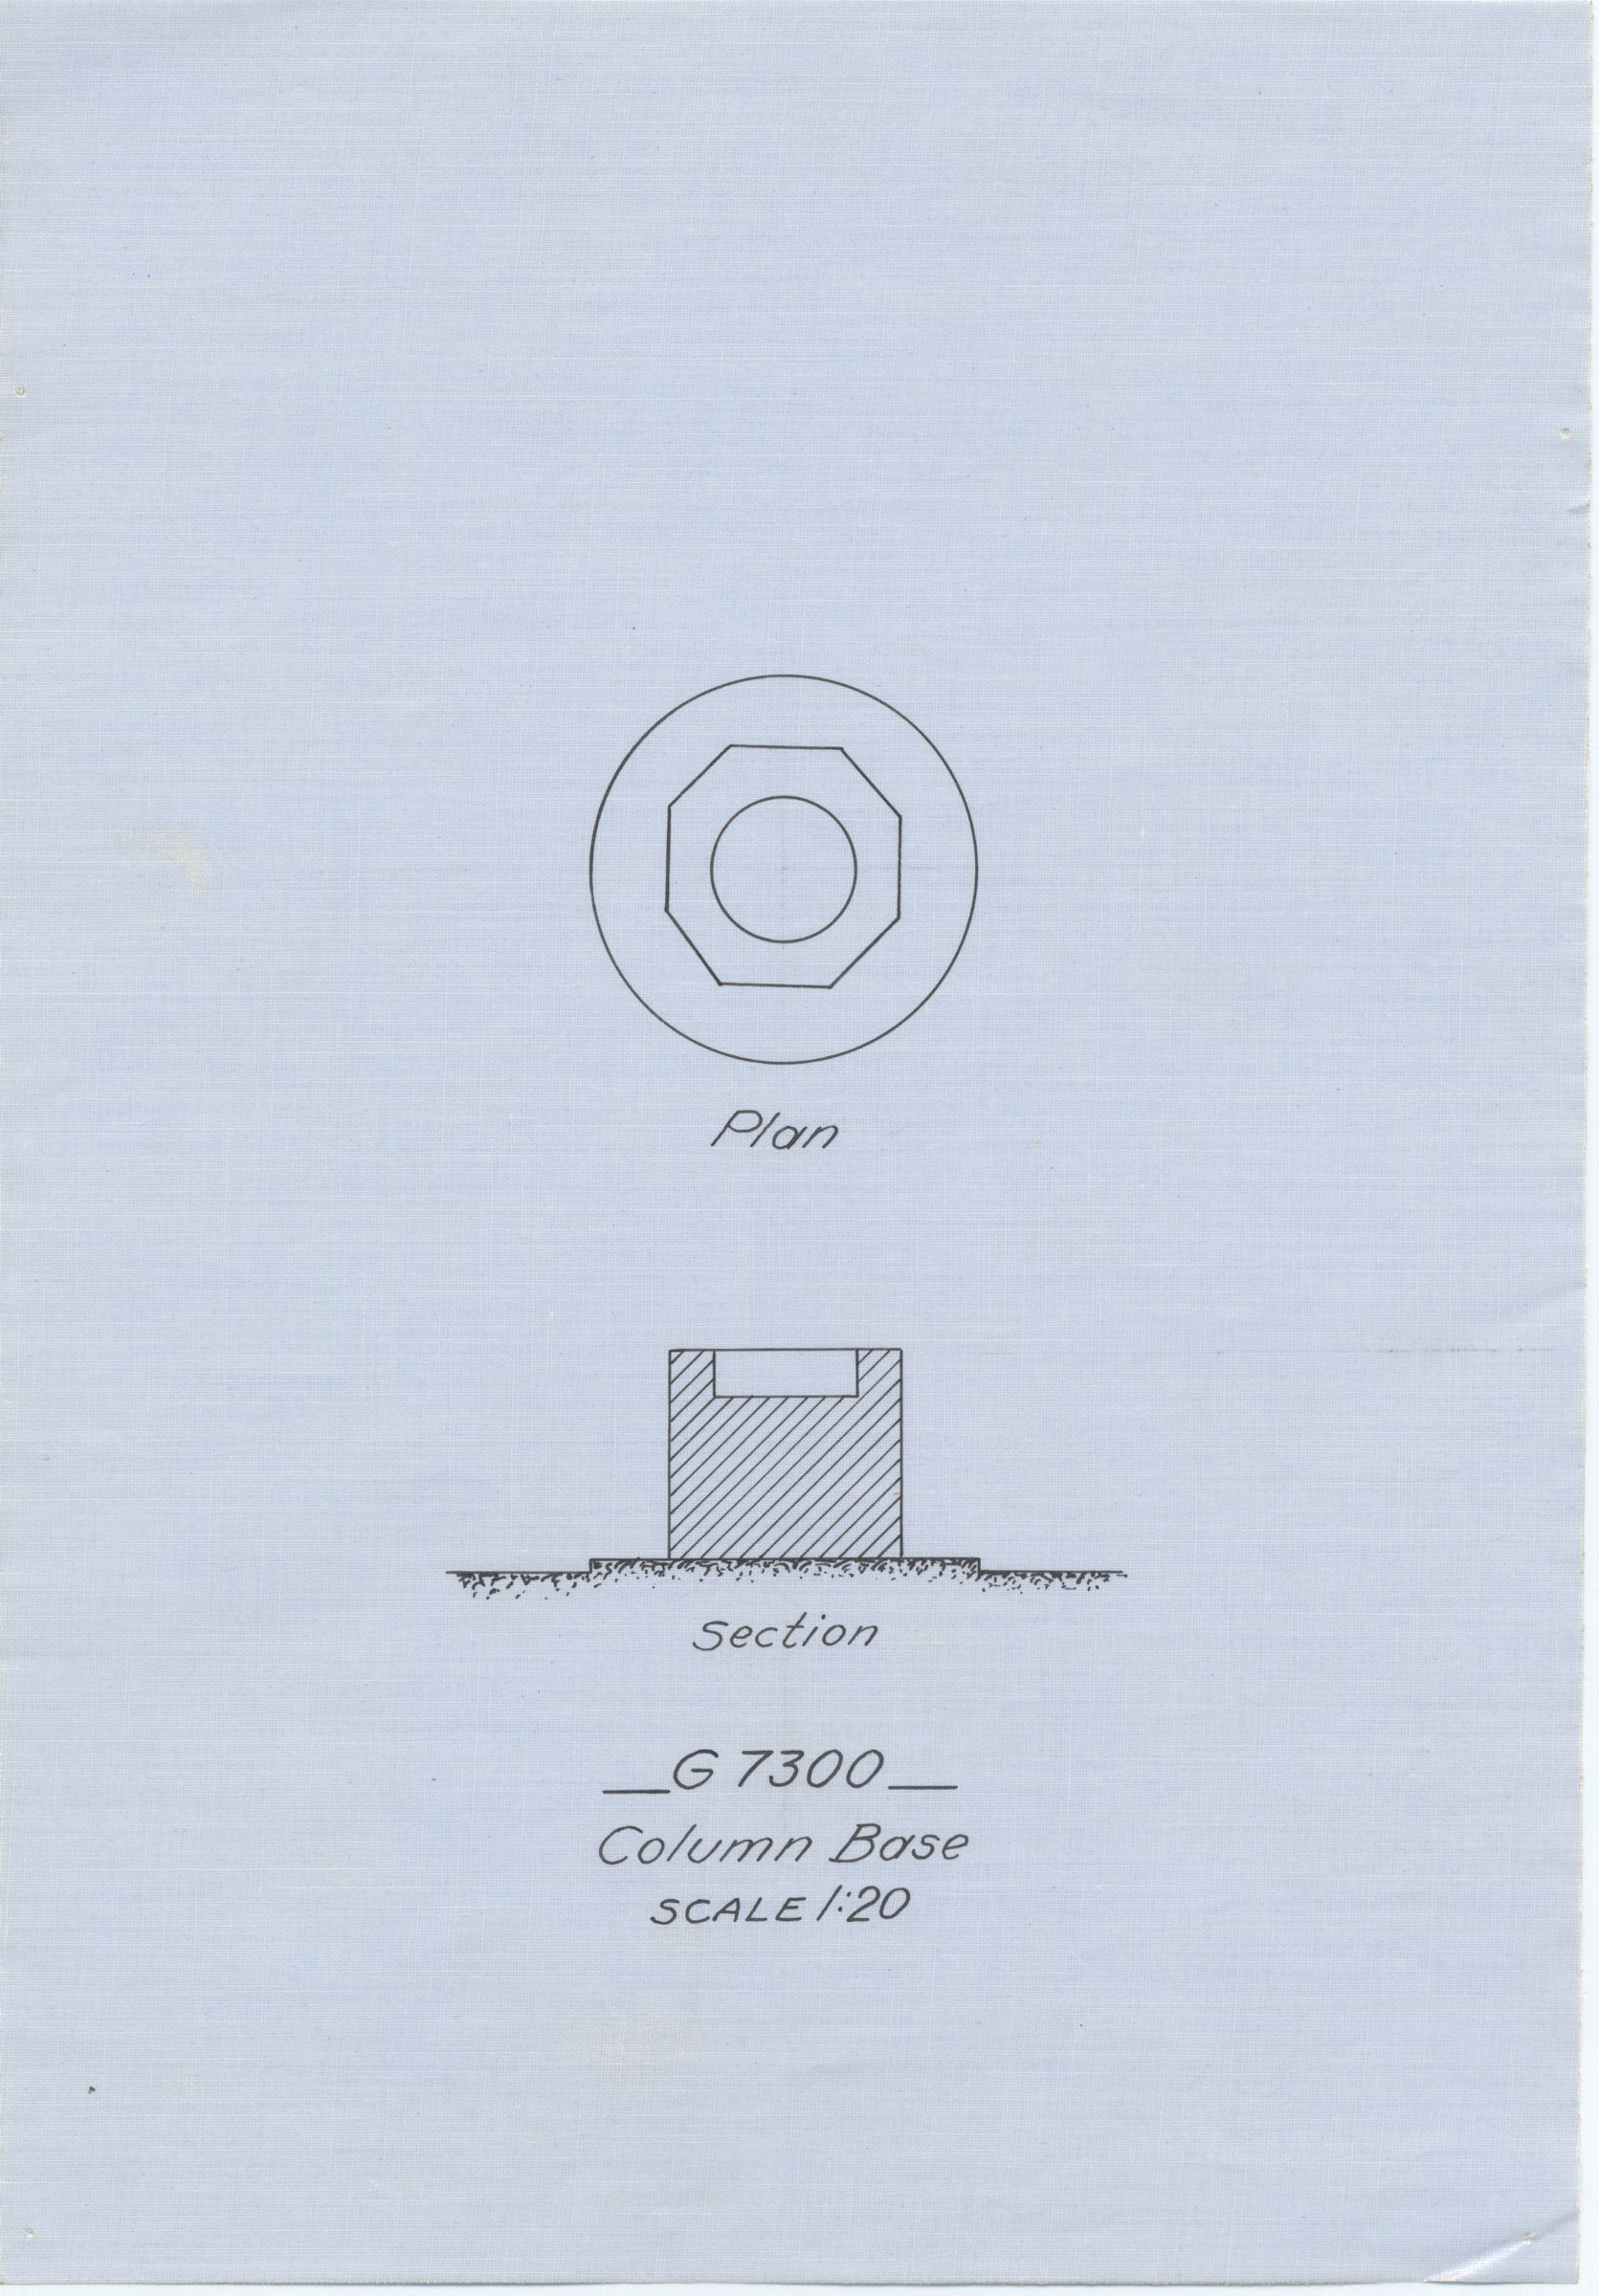 Maps and plans: G 7310-7320: G 7320, column base